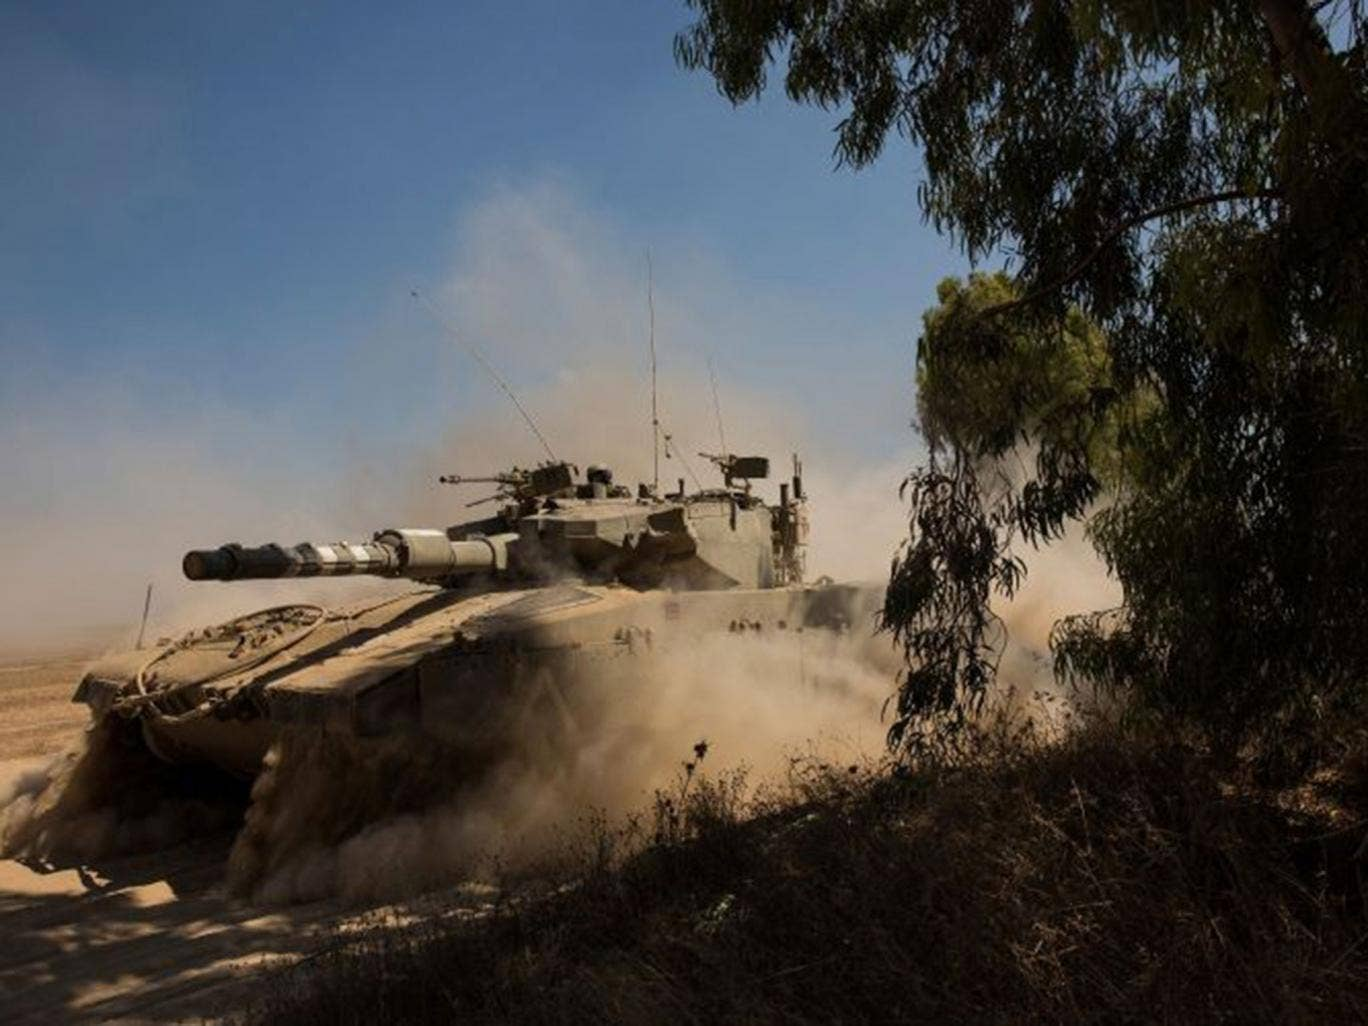 An Israeli tank on its way to the border with Gaza yesterday